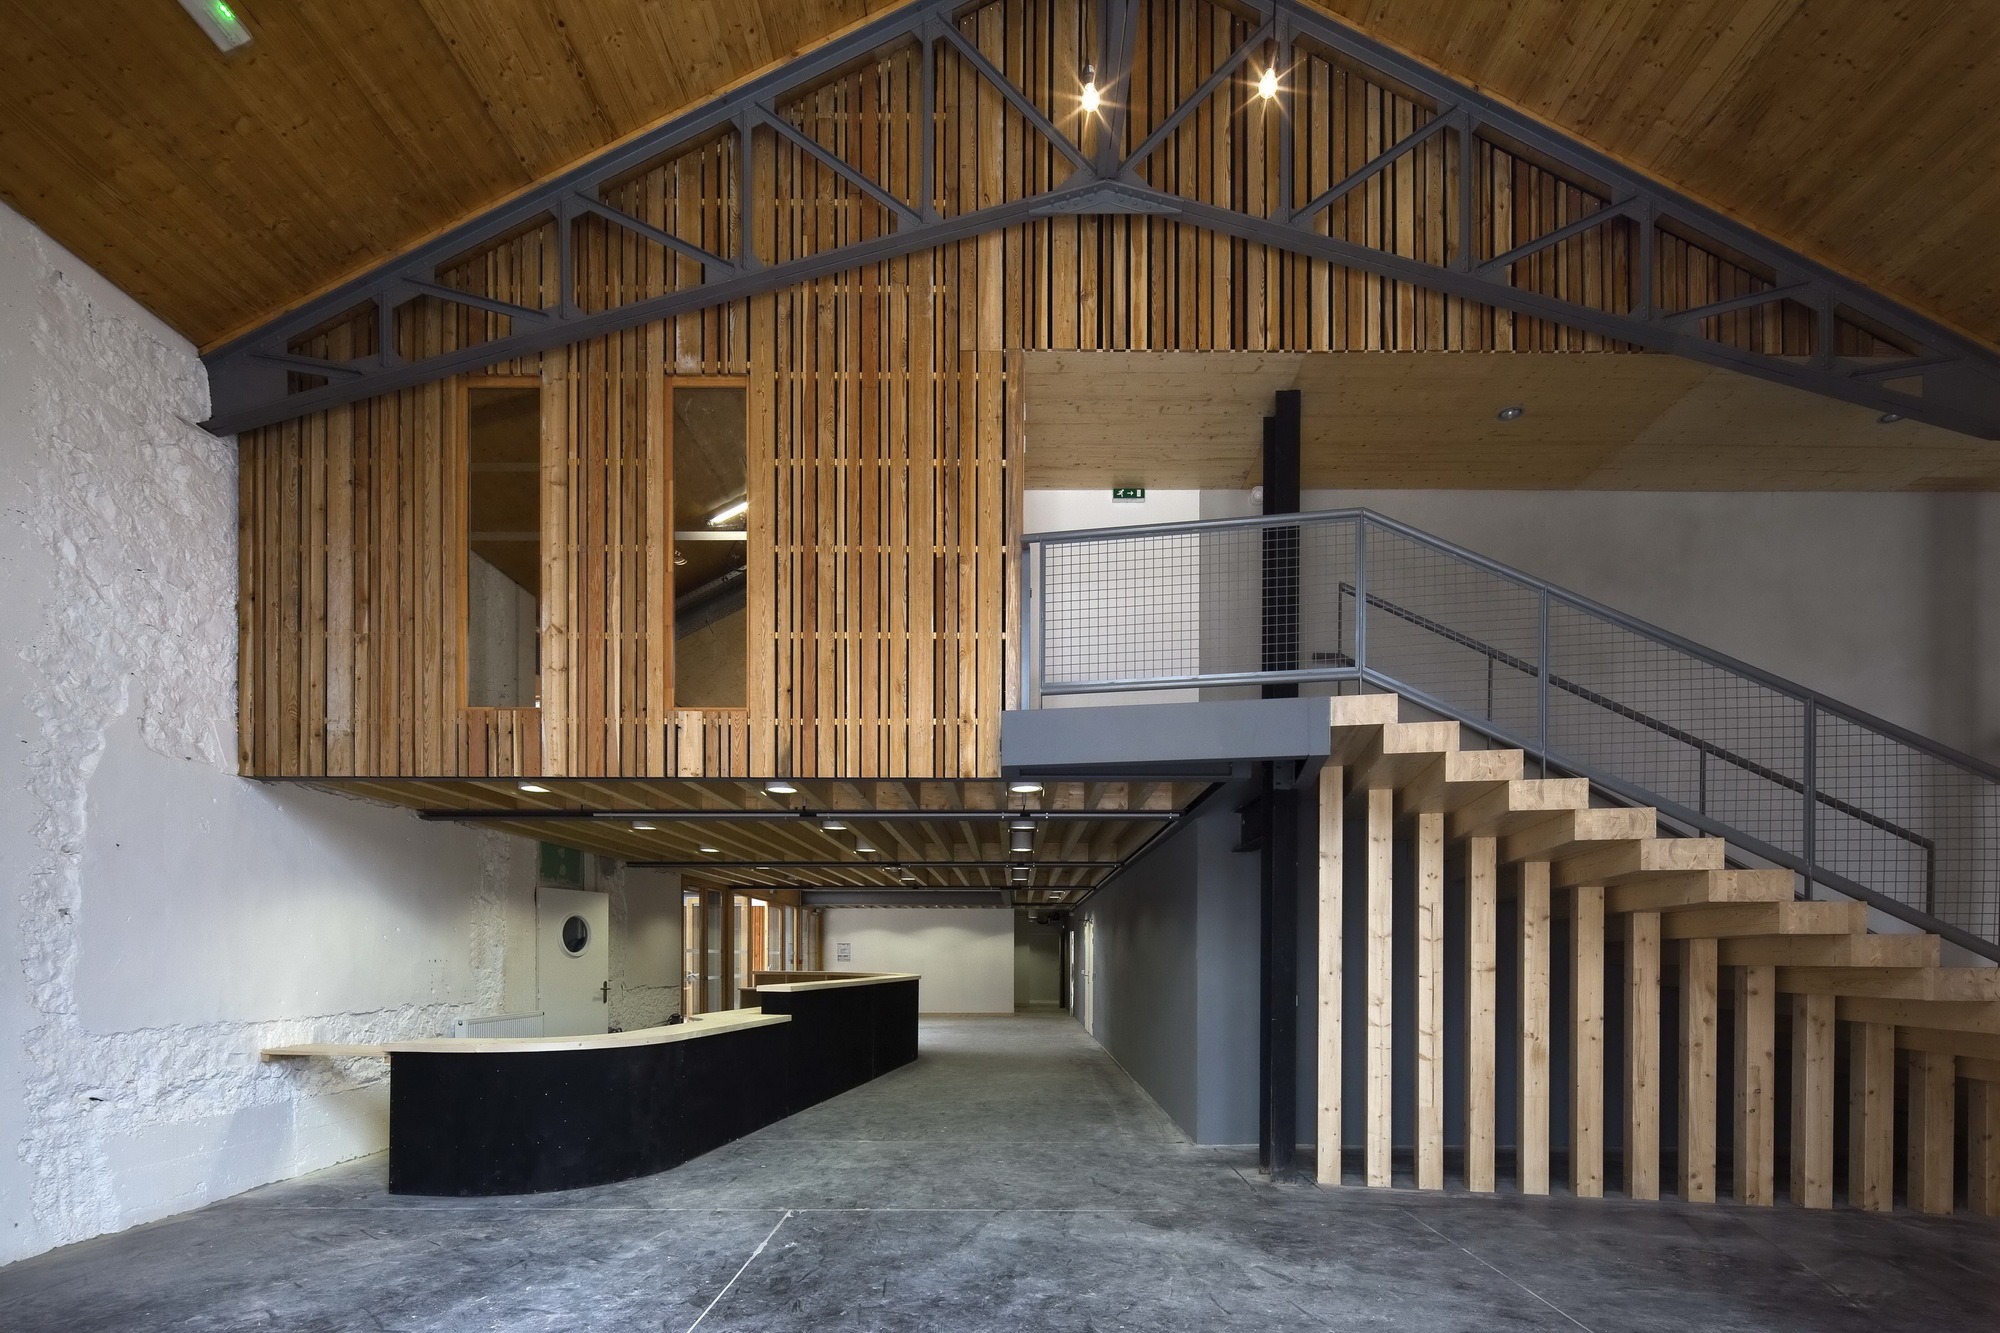 Circus Arts Conservatory / Adh Architects (15)